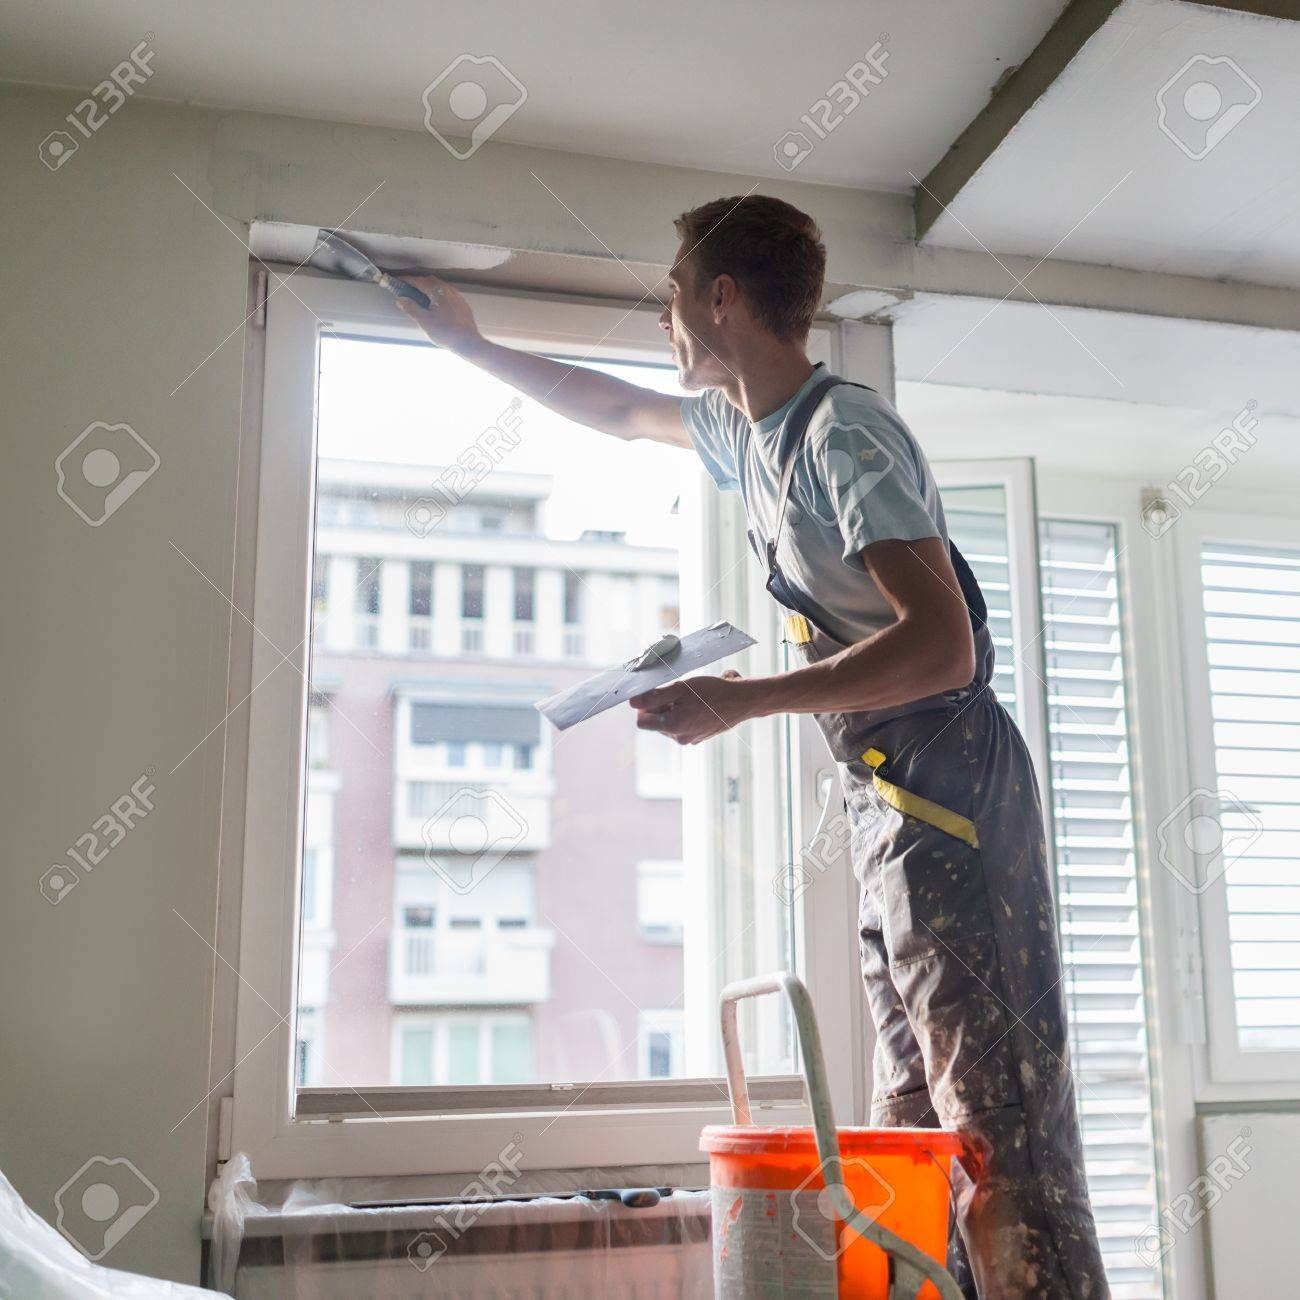 Attractive Stock Photo   Thirty Years Old Manual Worker With Wall Plastering Tools  Inside A House. Plasterer Renovating Indoor Walls And Ceilings With Float  And ...